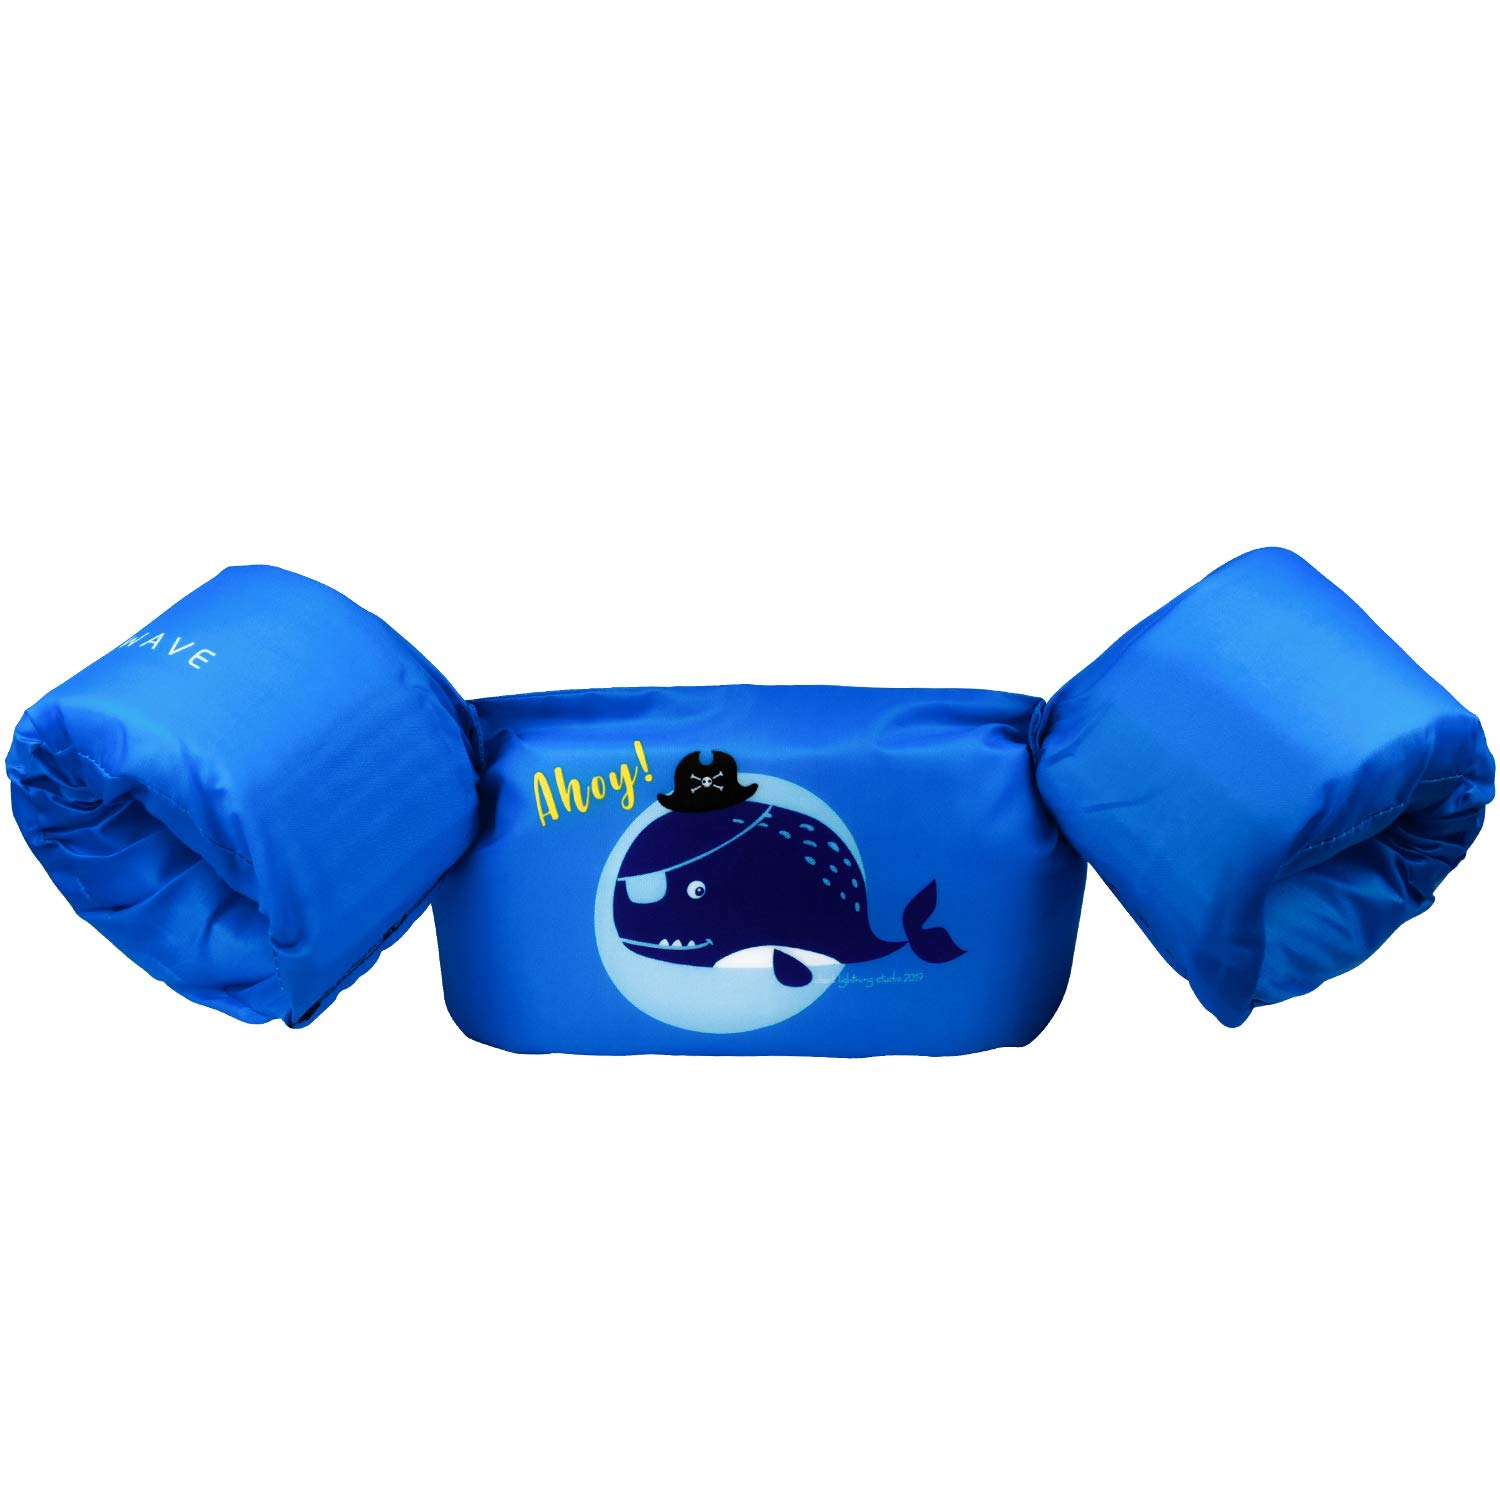 NEXWAVE Kids Life Jacket 20-30 Pounds for Boys Babies/Toddles, Floatie up to 50 lbs, for Pool/Puddle/Seabeach Playing and Jumpers (Blue - Pirate Whale)